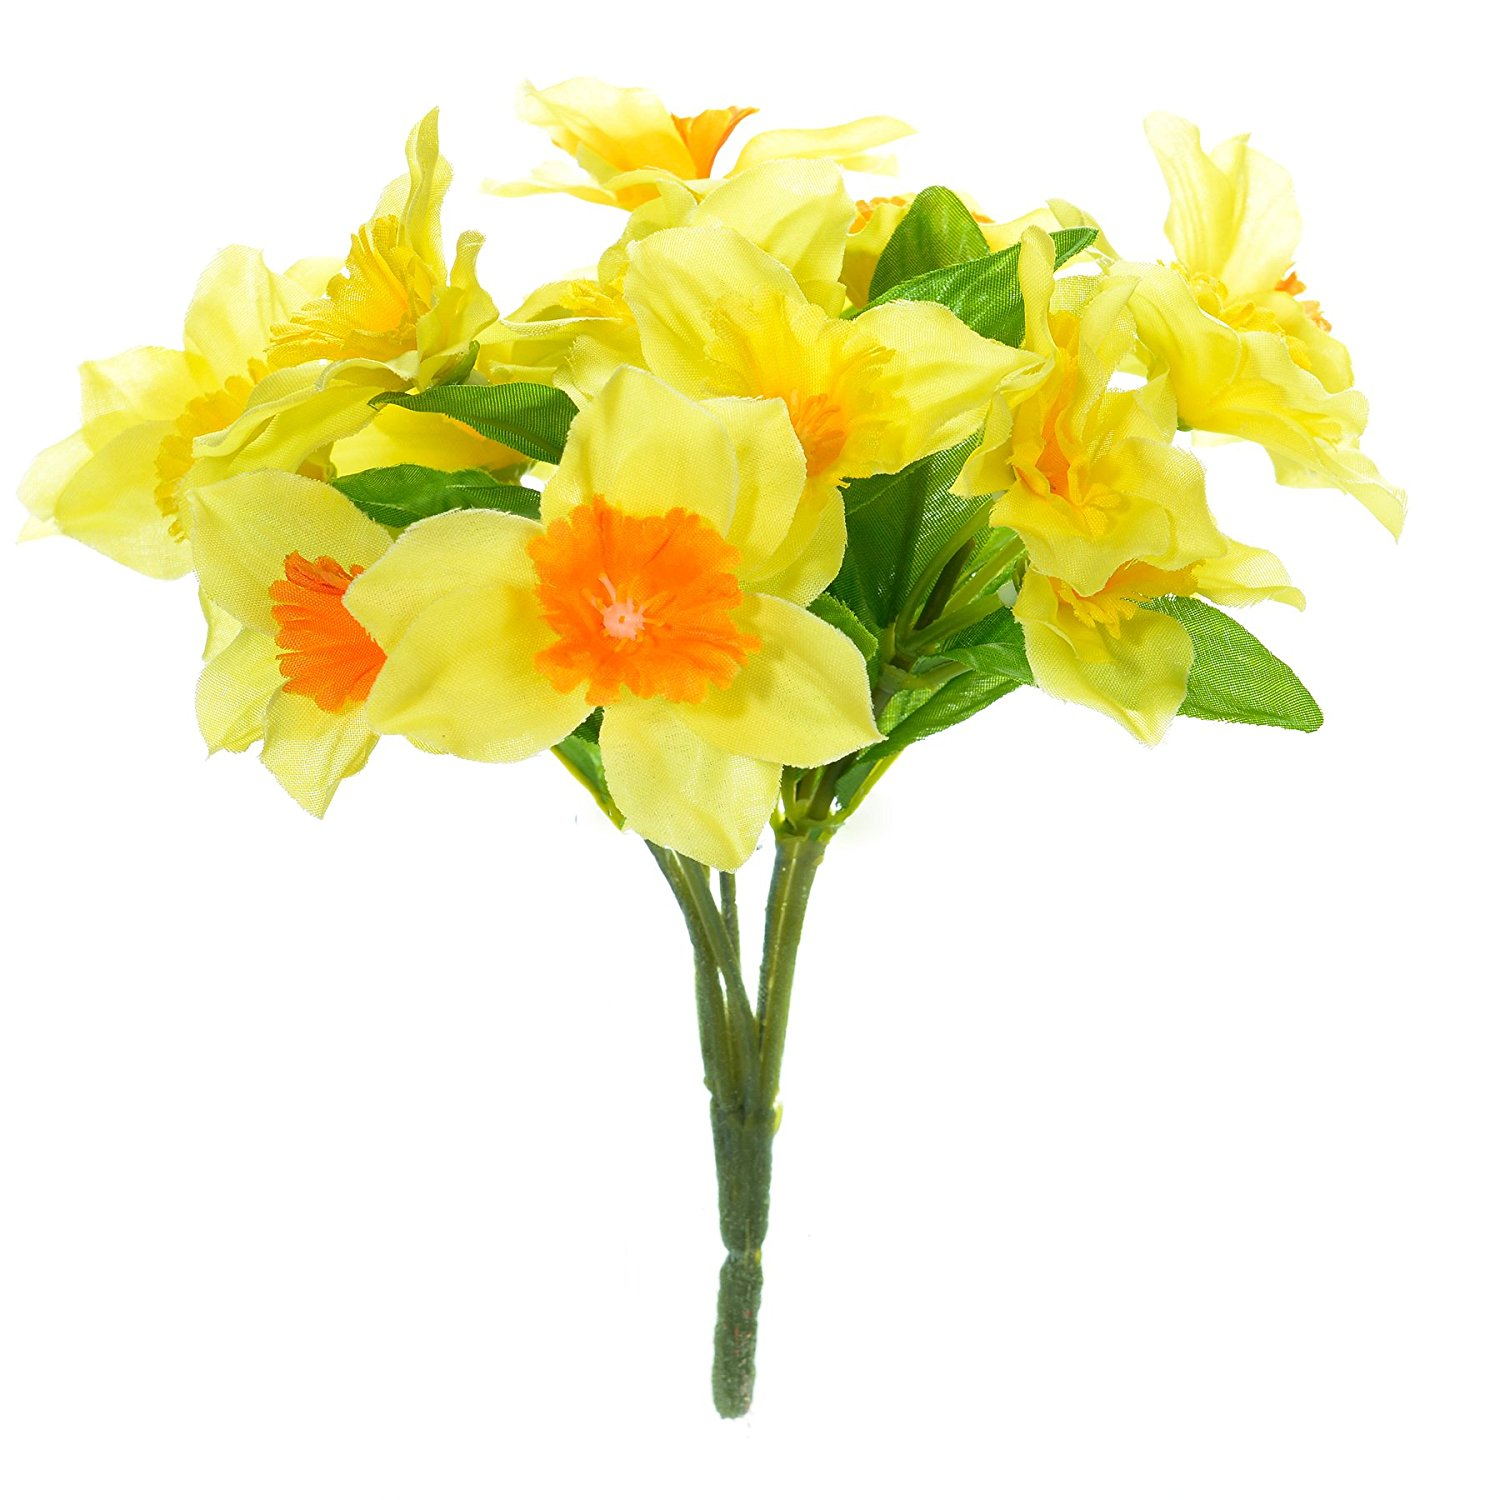 Cheap Flowers On Stems Find Flowers On Stems Deals On Line At